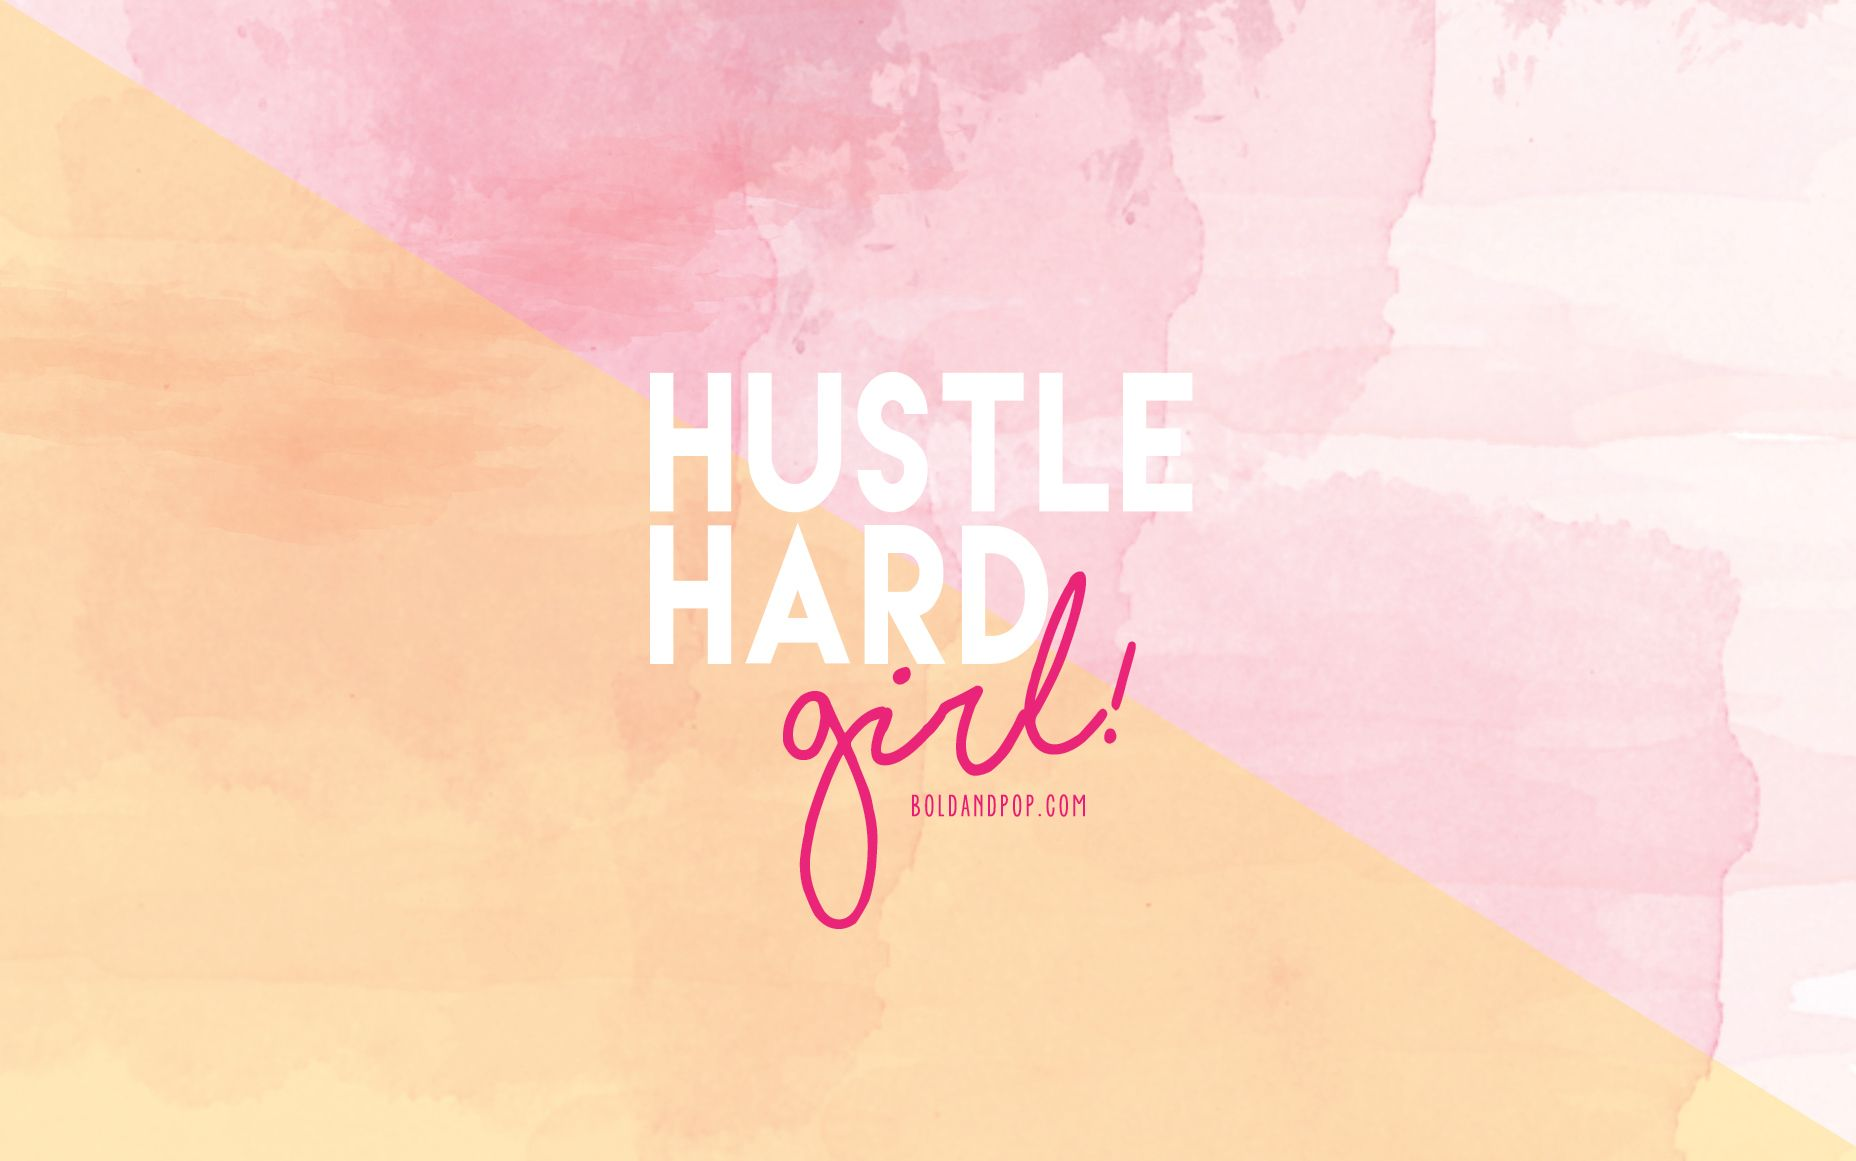 Bold Pop Freebies Hustle Hard Girl Desktop Wallpaper Free Download Squarespace Website Design Social Media Planner Funny Inspirational Quotes